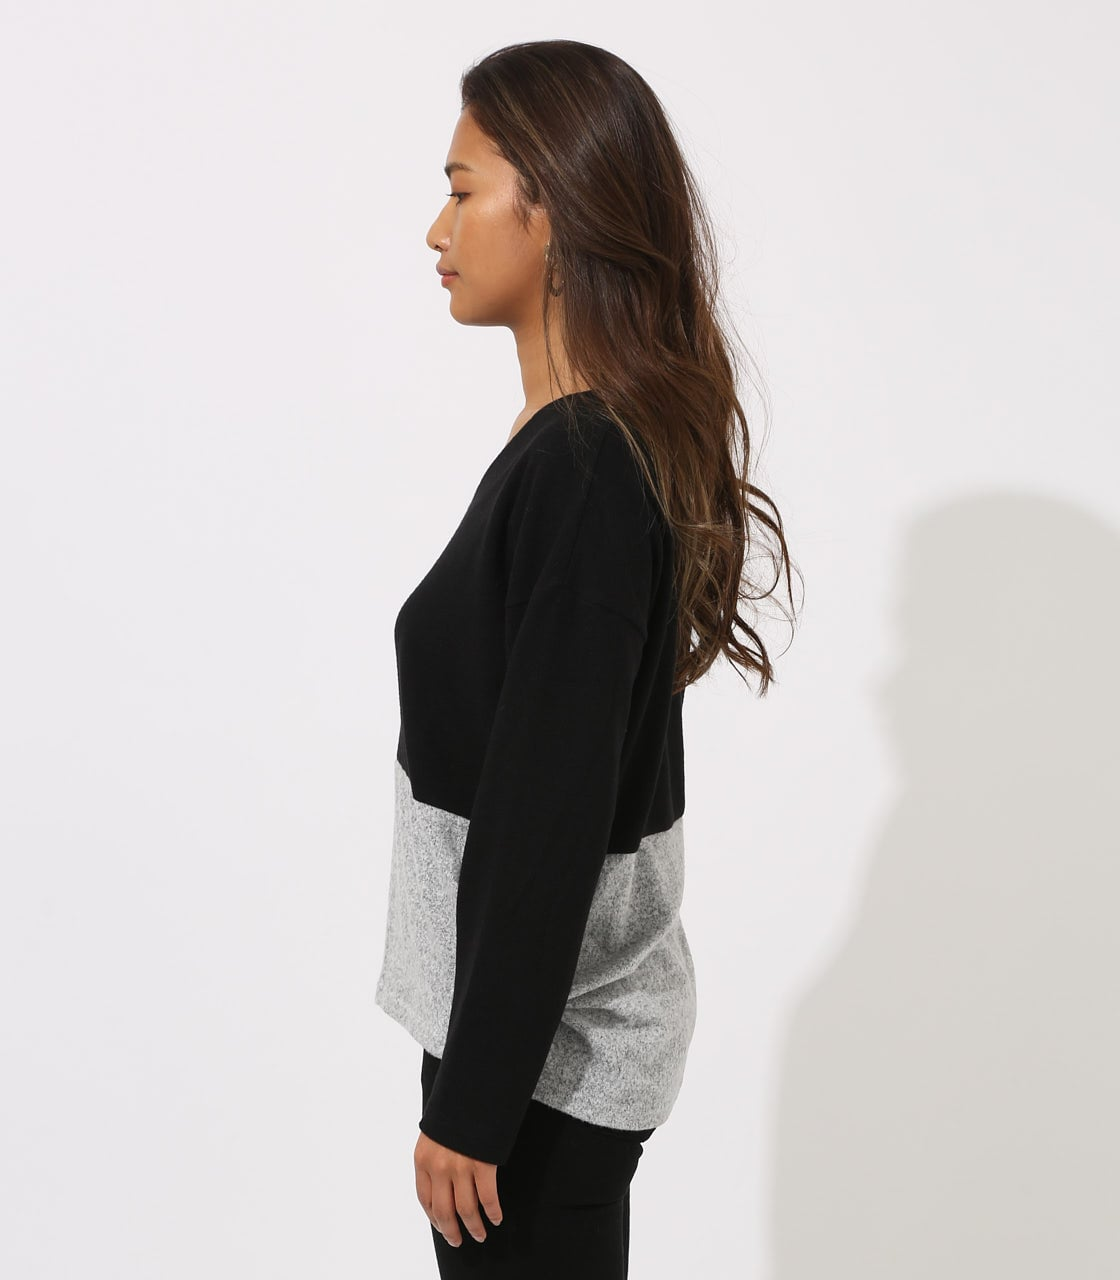 【AZUL BY MOUSSY】BICOLOR V NECK TOPS 詳細画像 柄BLK 6